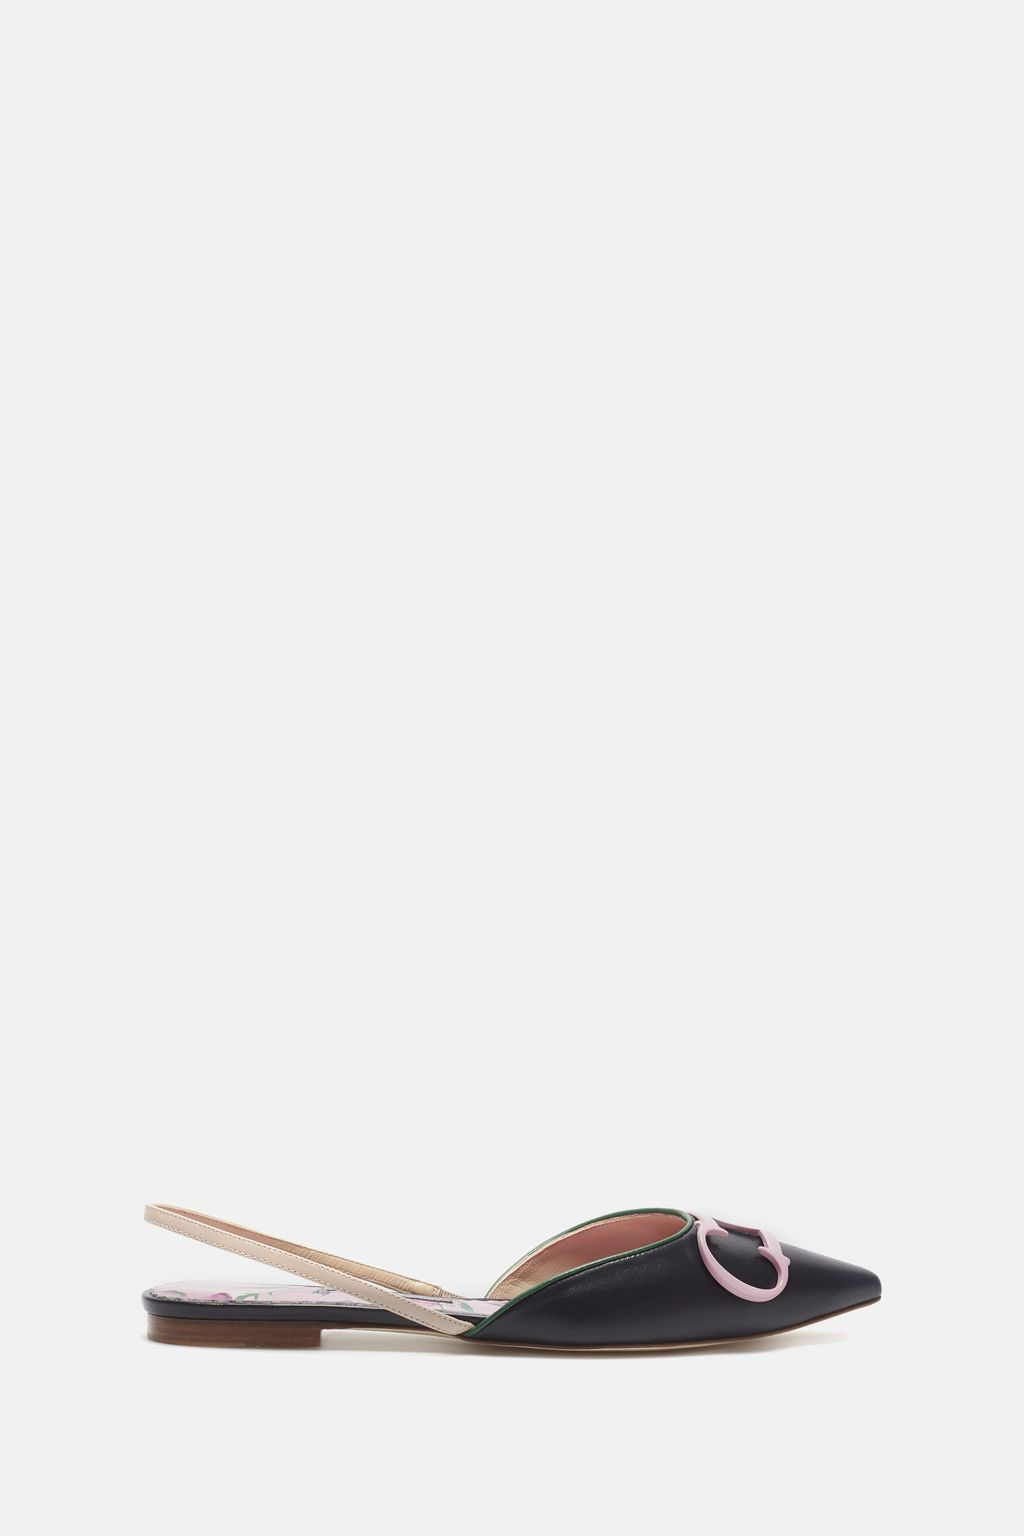 CH in Bloom slingback flats